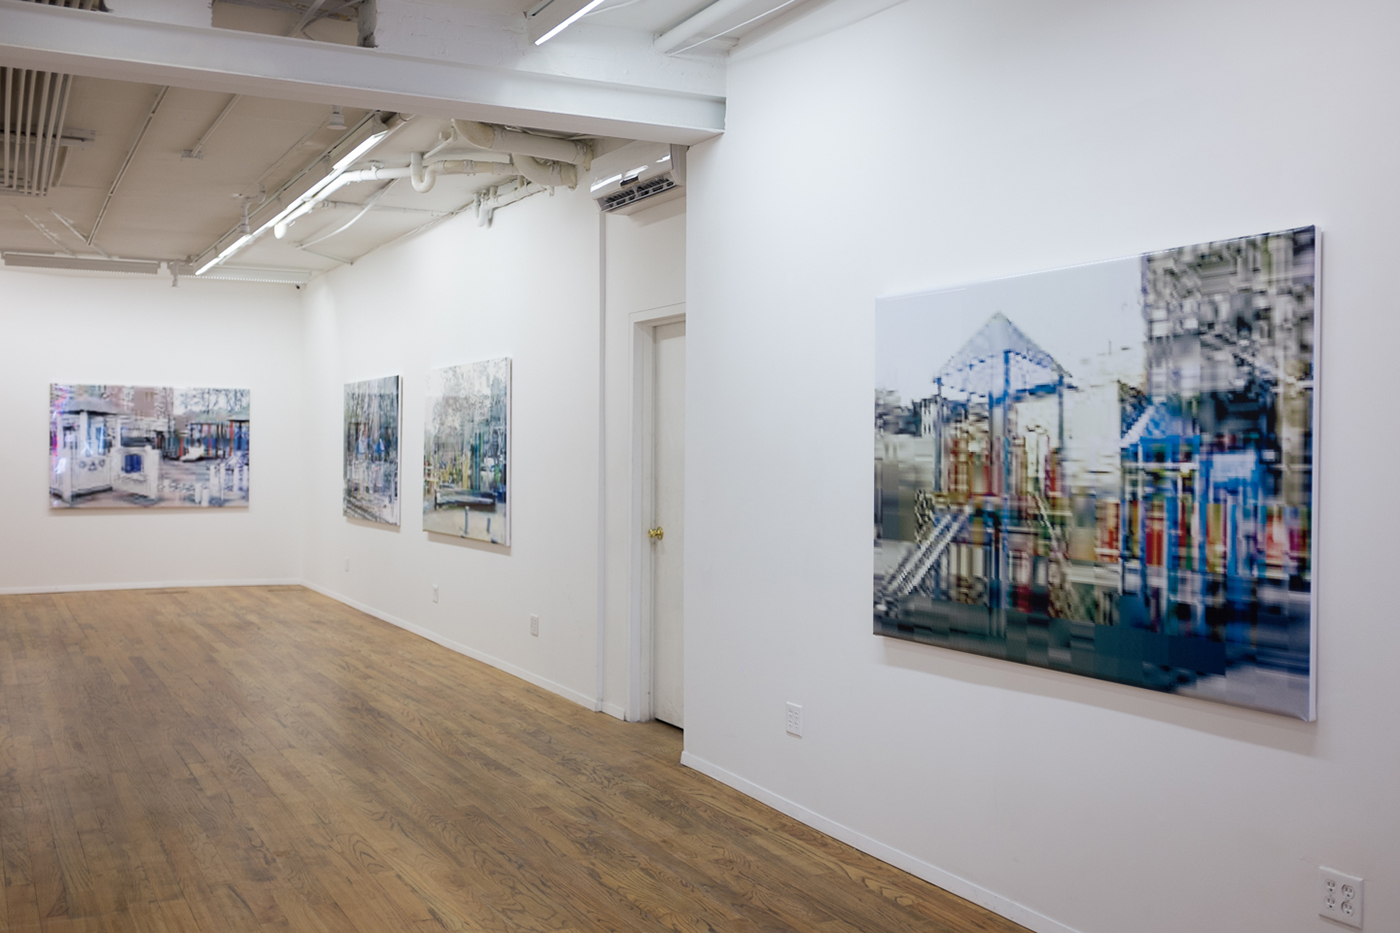 Installation view, 'Olaf Rauh: Playgrounds' at Galerie Richard (photo by the author for Hyperallergic) (click to enlarge)